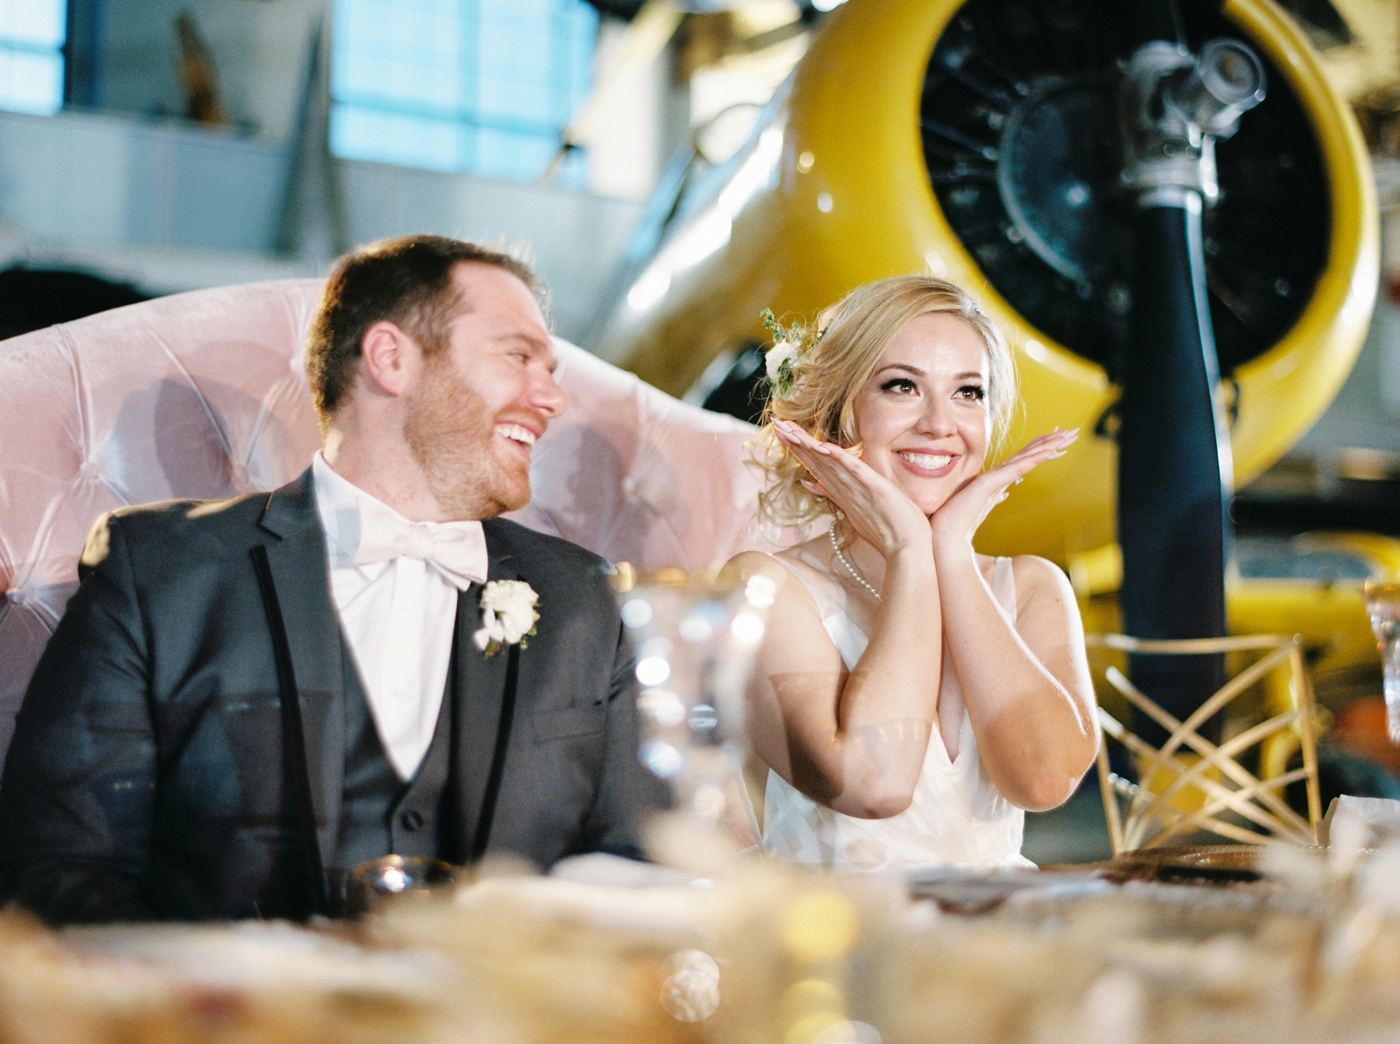 calgary wedding photographers | Ukrainian wedding | justine milton fine art photographer | wedding reception airplane museum candids